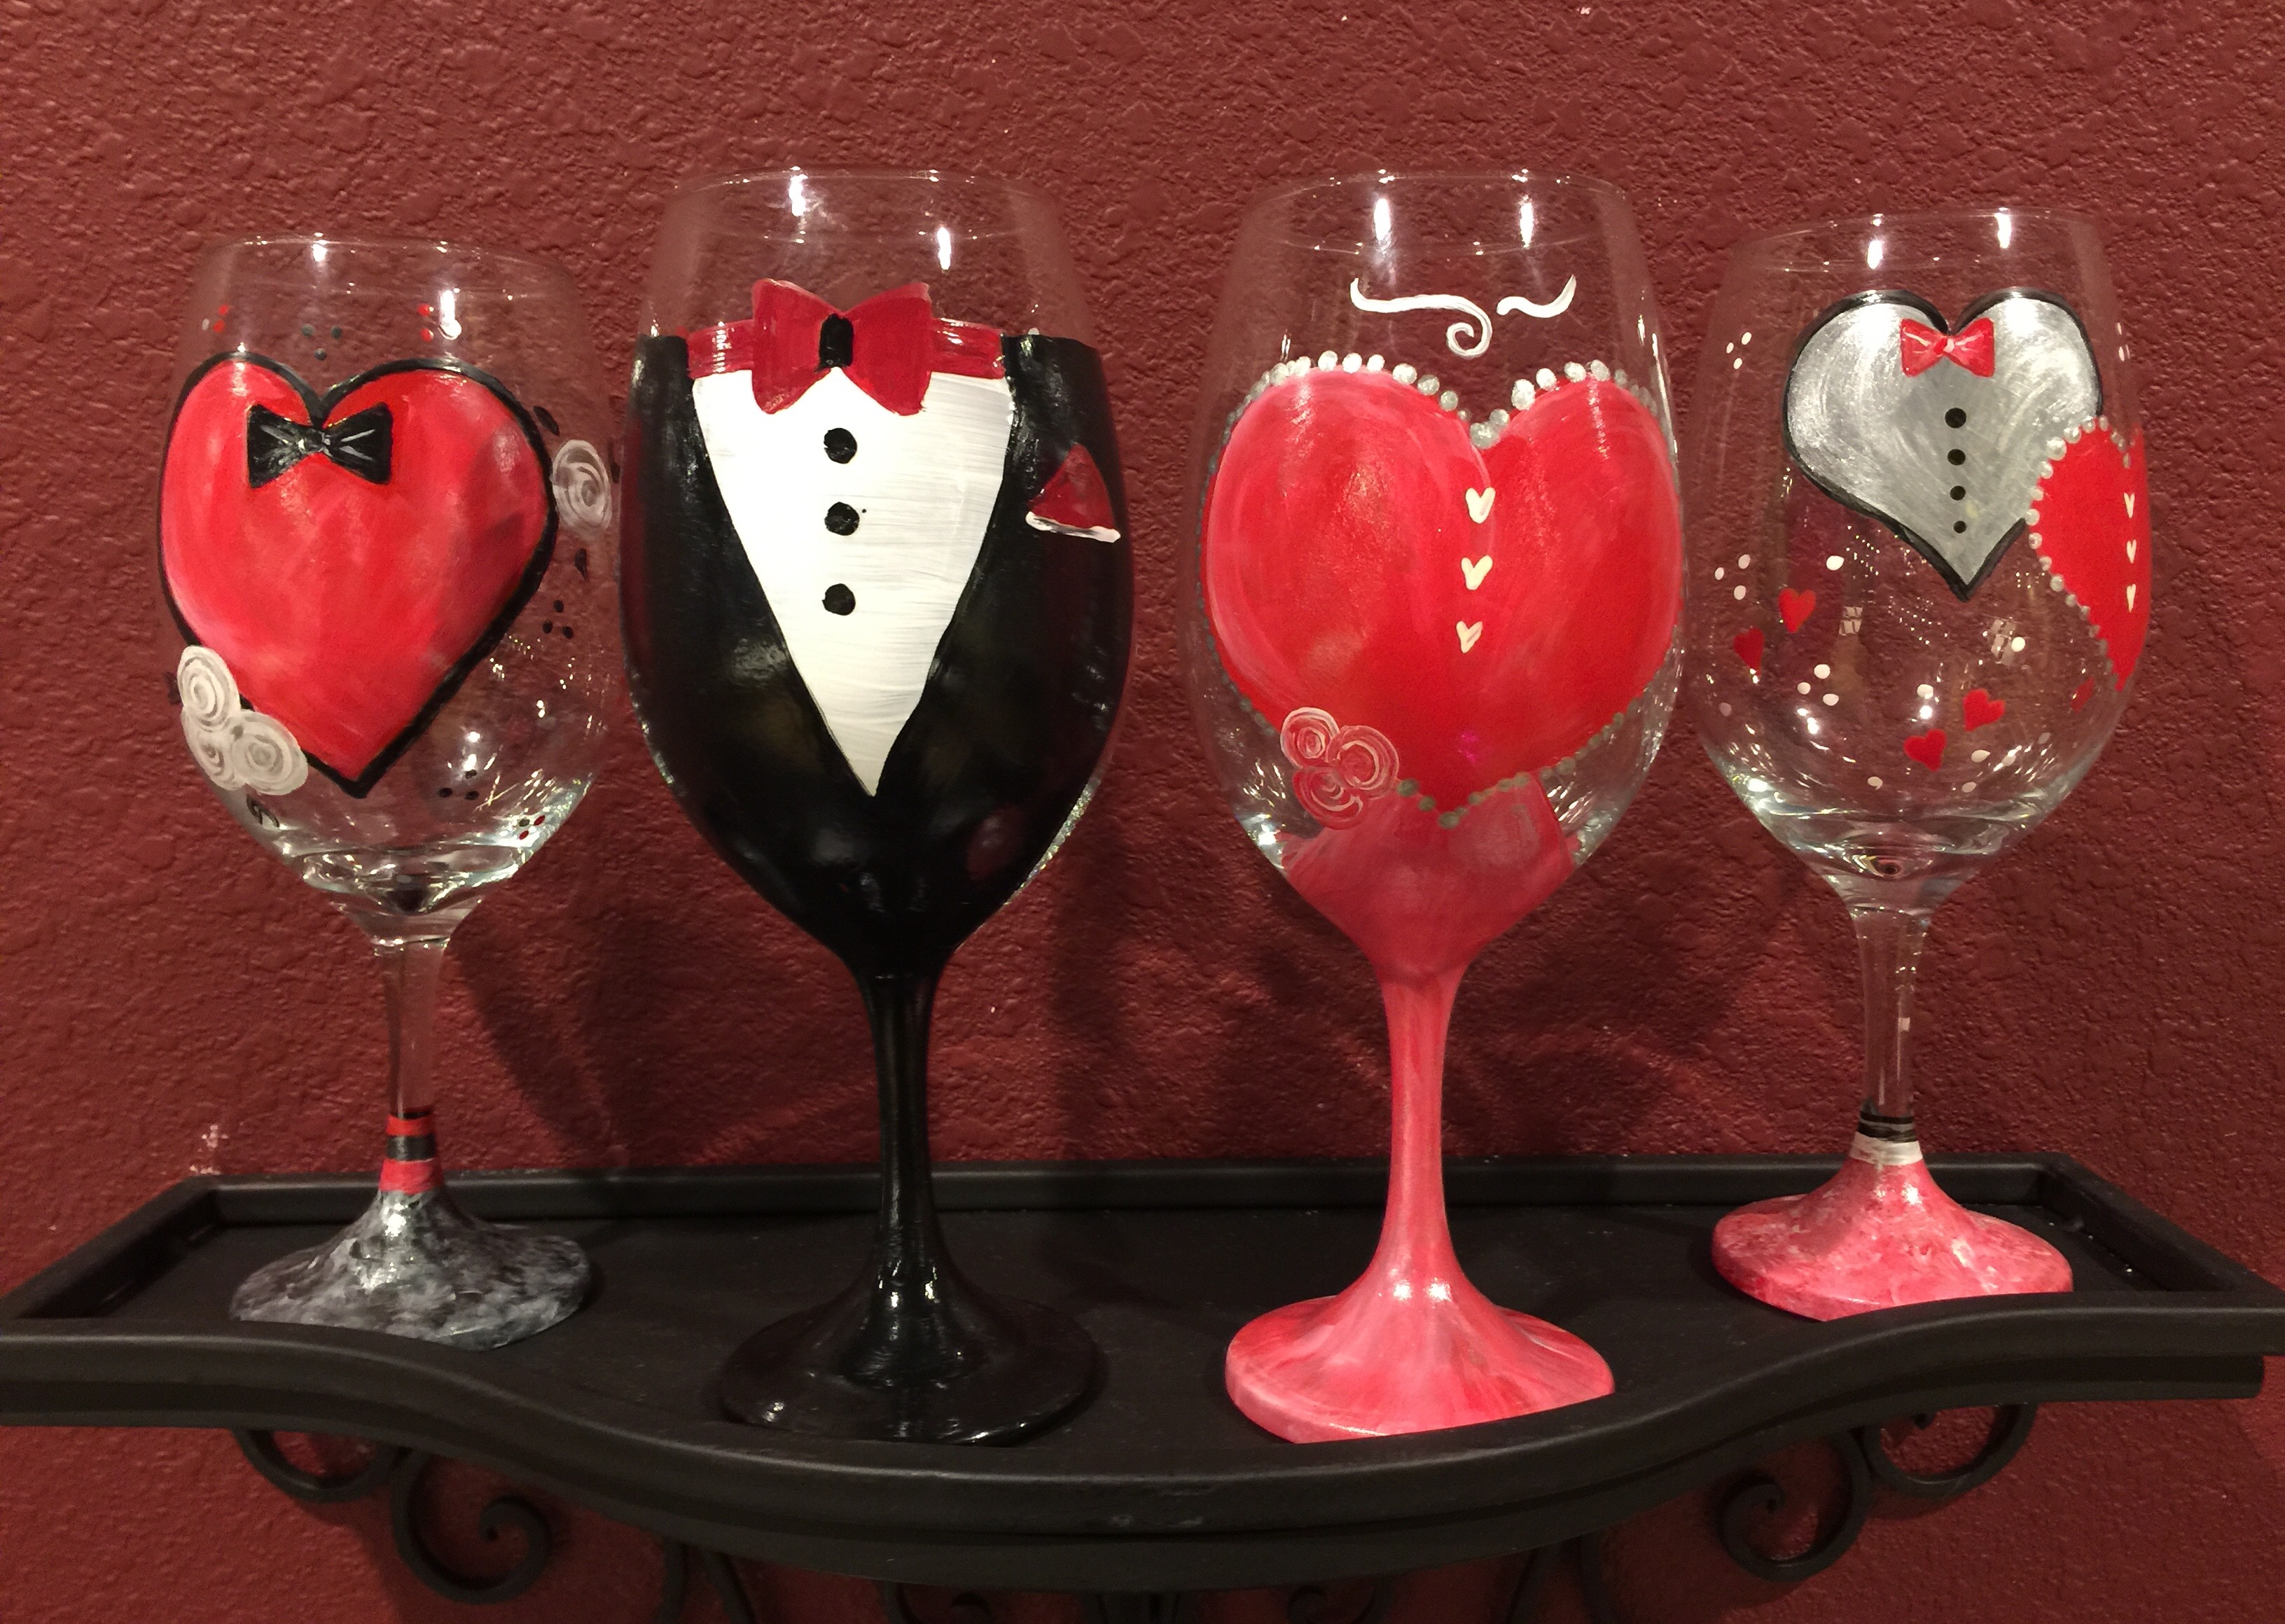 Valentine S Wine Glasses Date Night Wed Feb 10 7pm At The District